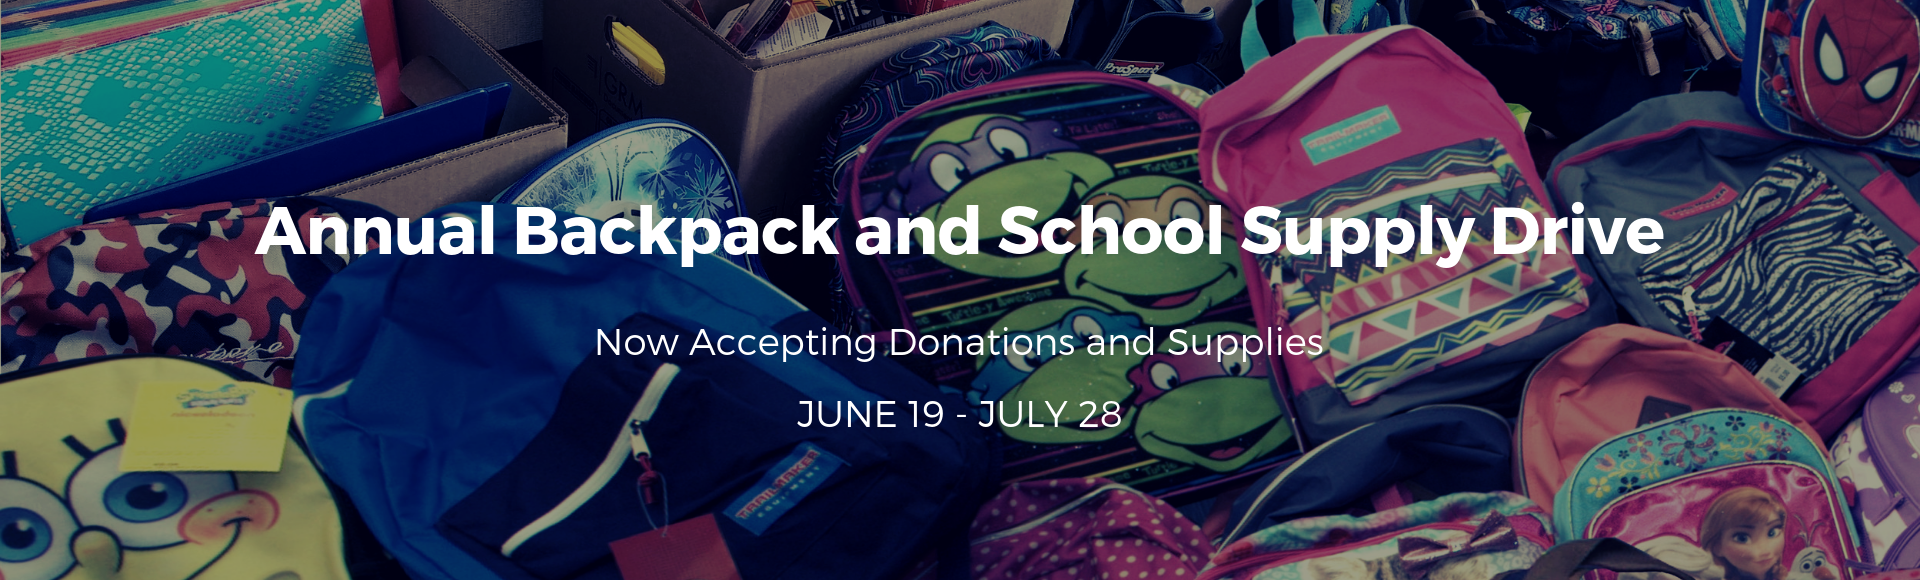 Annual Backpack and School Supply Drive